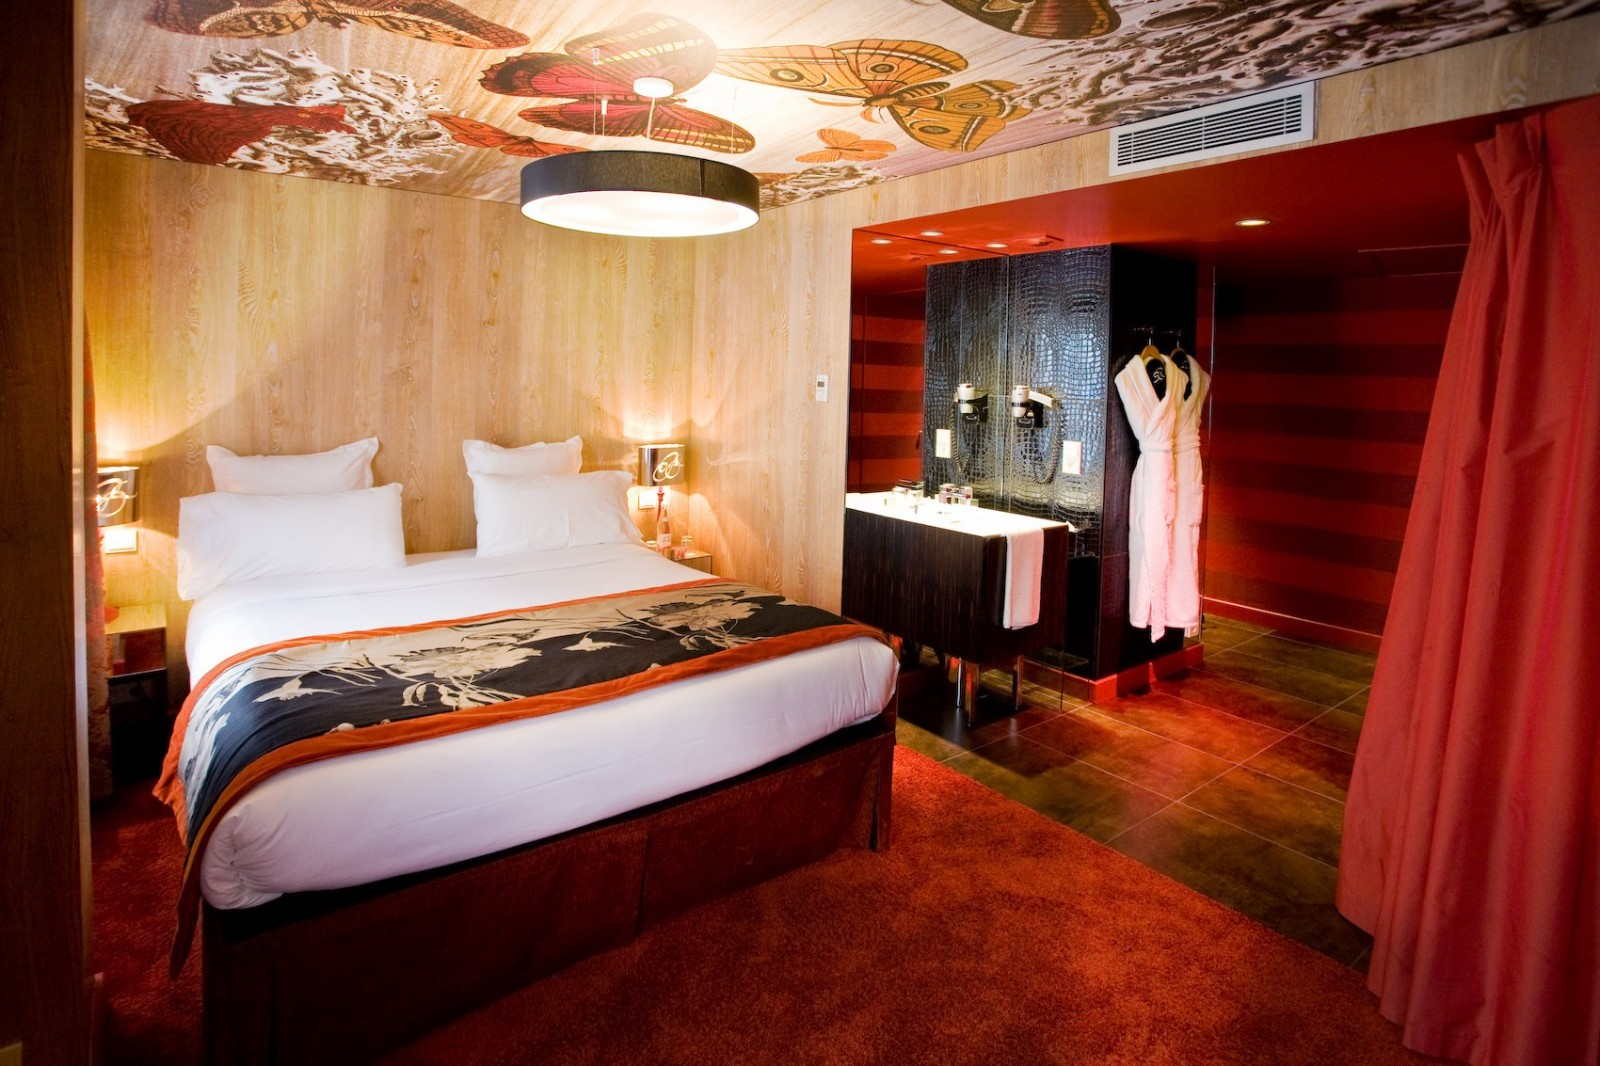 hotel-bellechasse-paris-christian-lacroix-interior-design